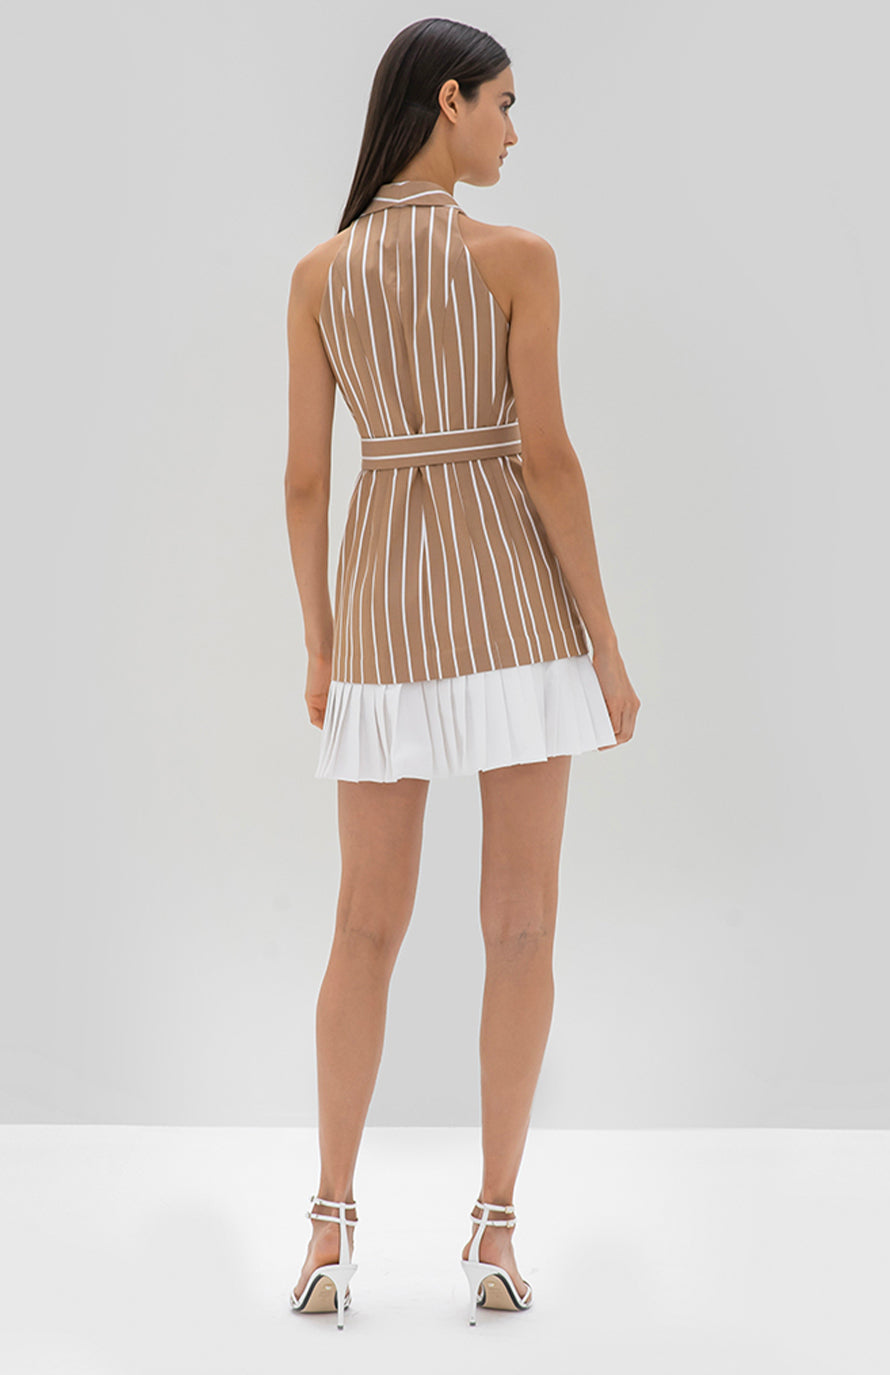 Alexis Carmona Dress Tan stripe - Rear View